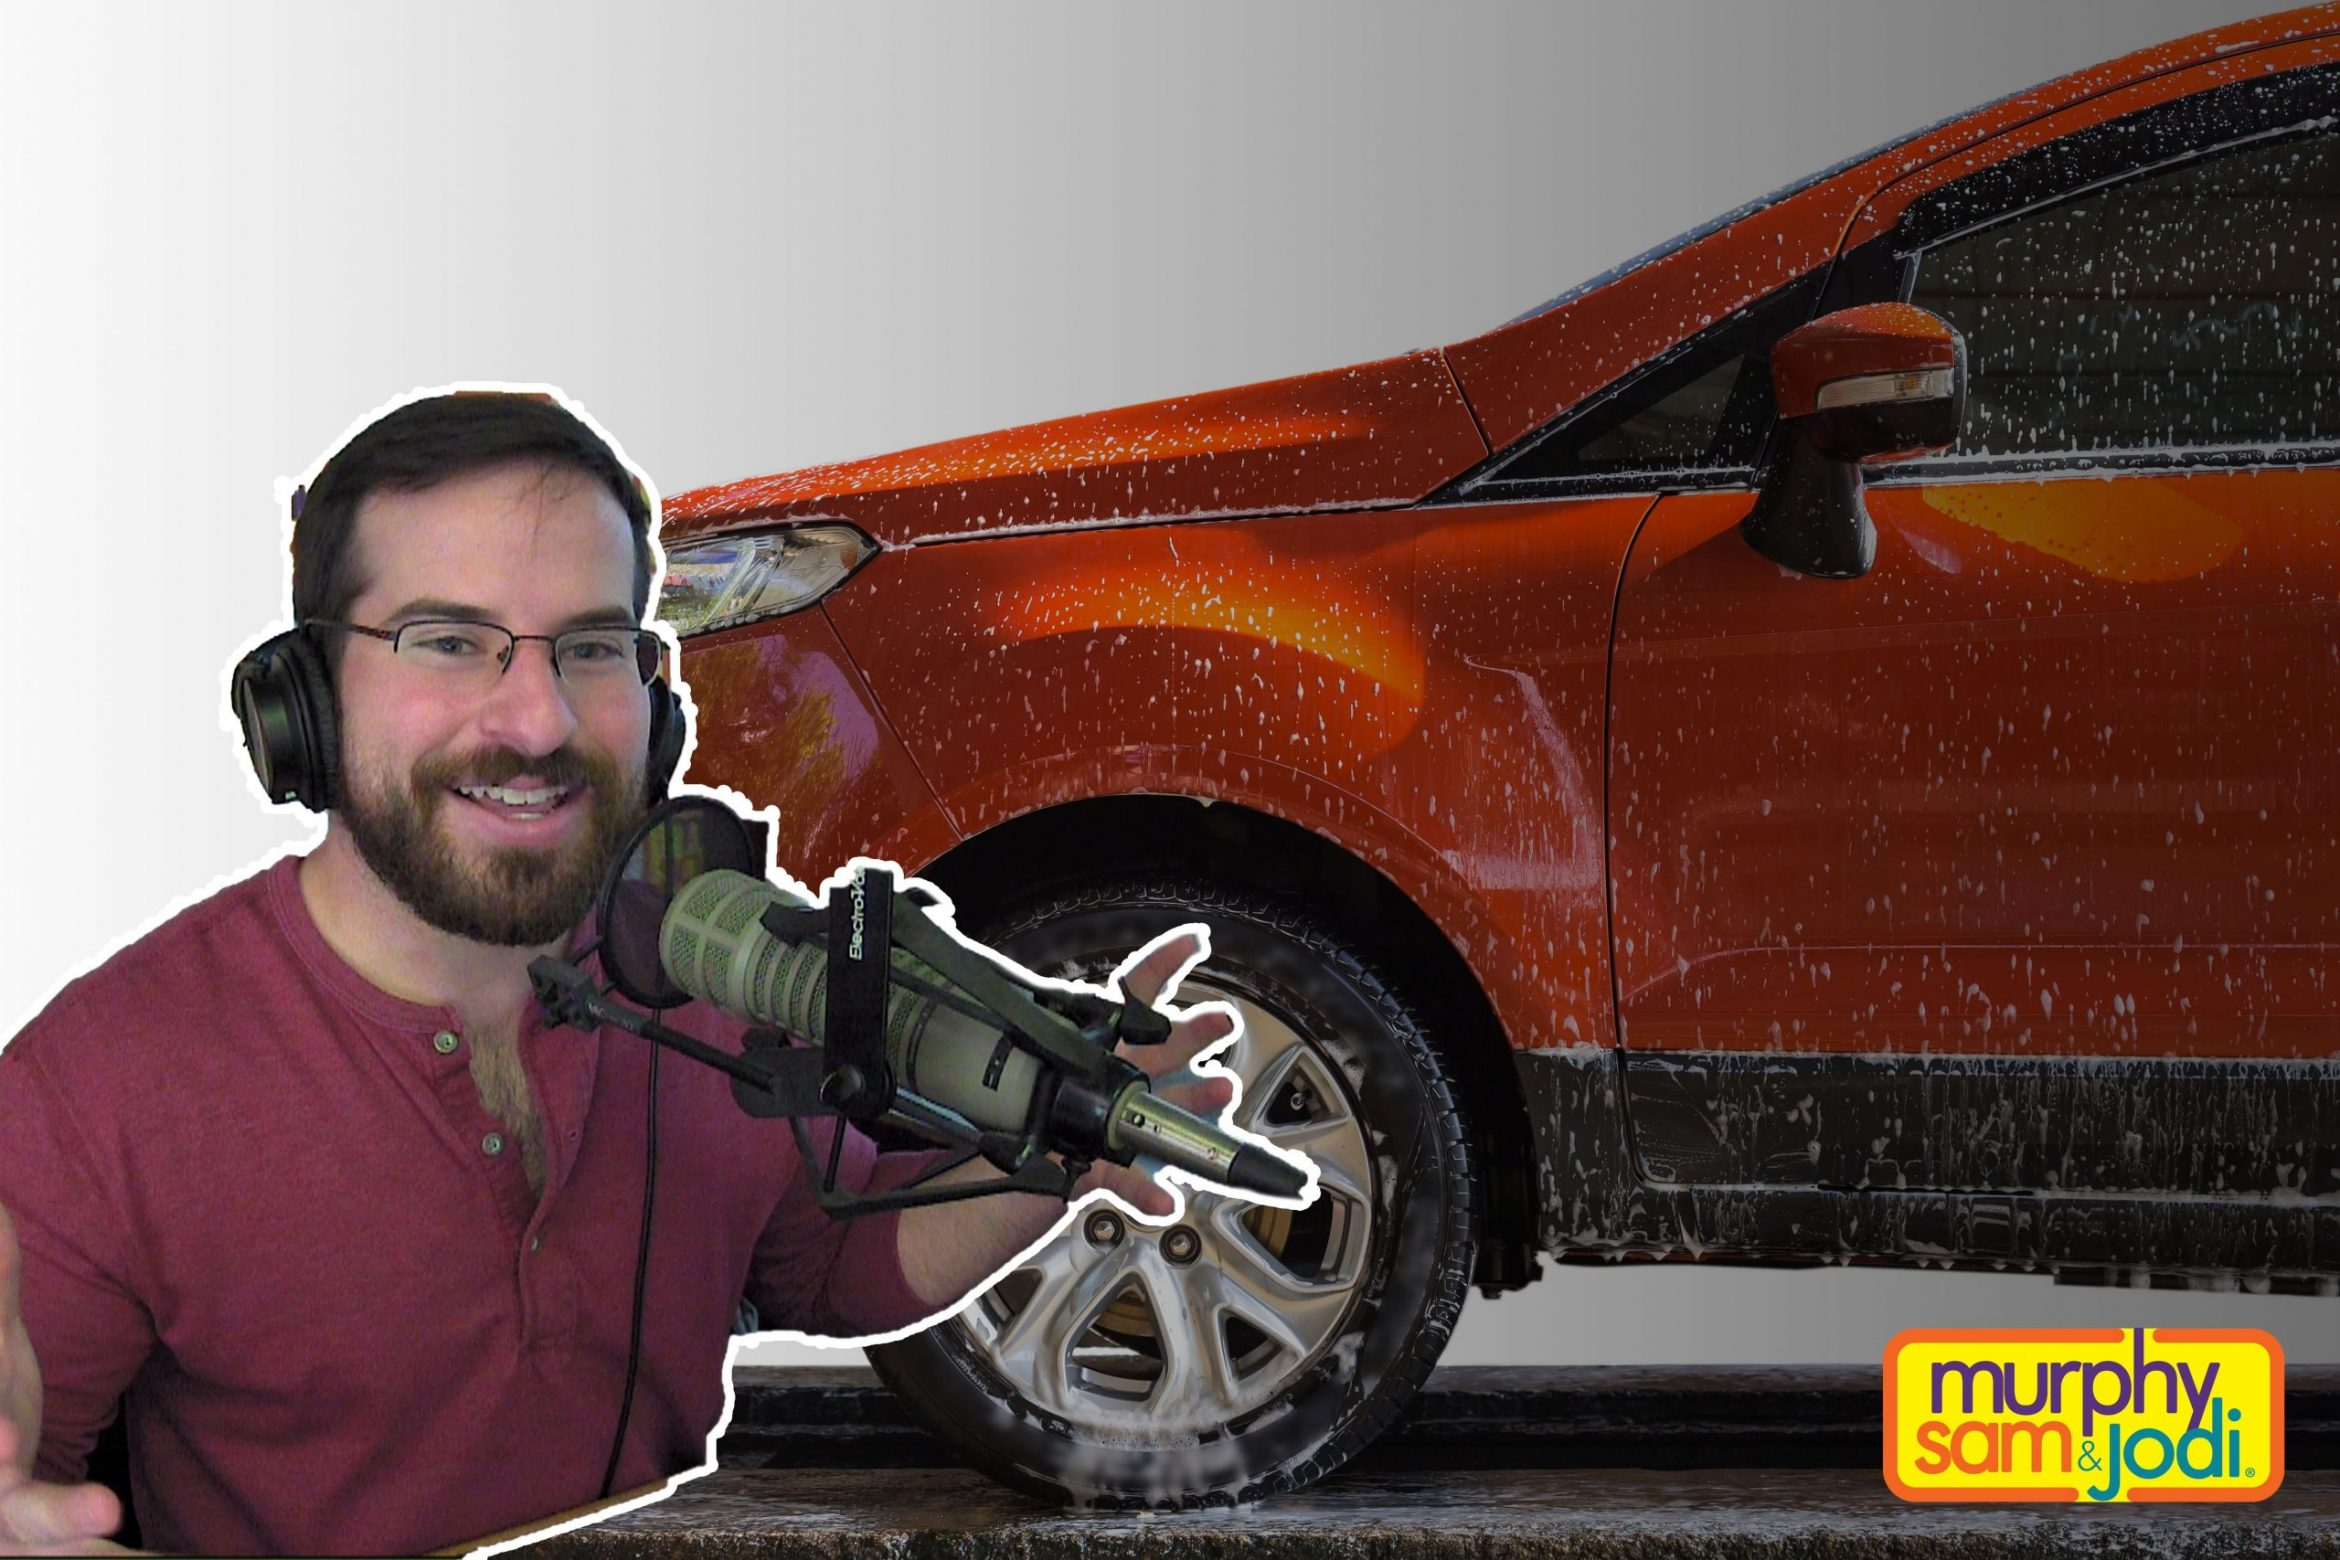 SHOULD PRODUCER DAVID BUY AN ORANGE CAR?